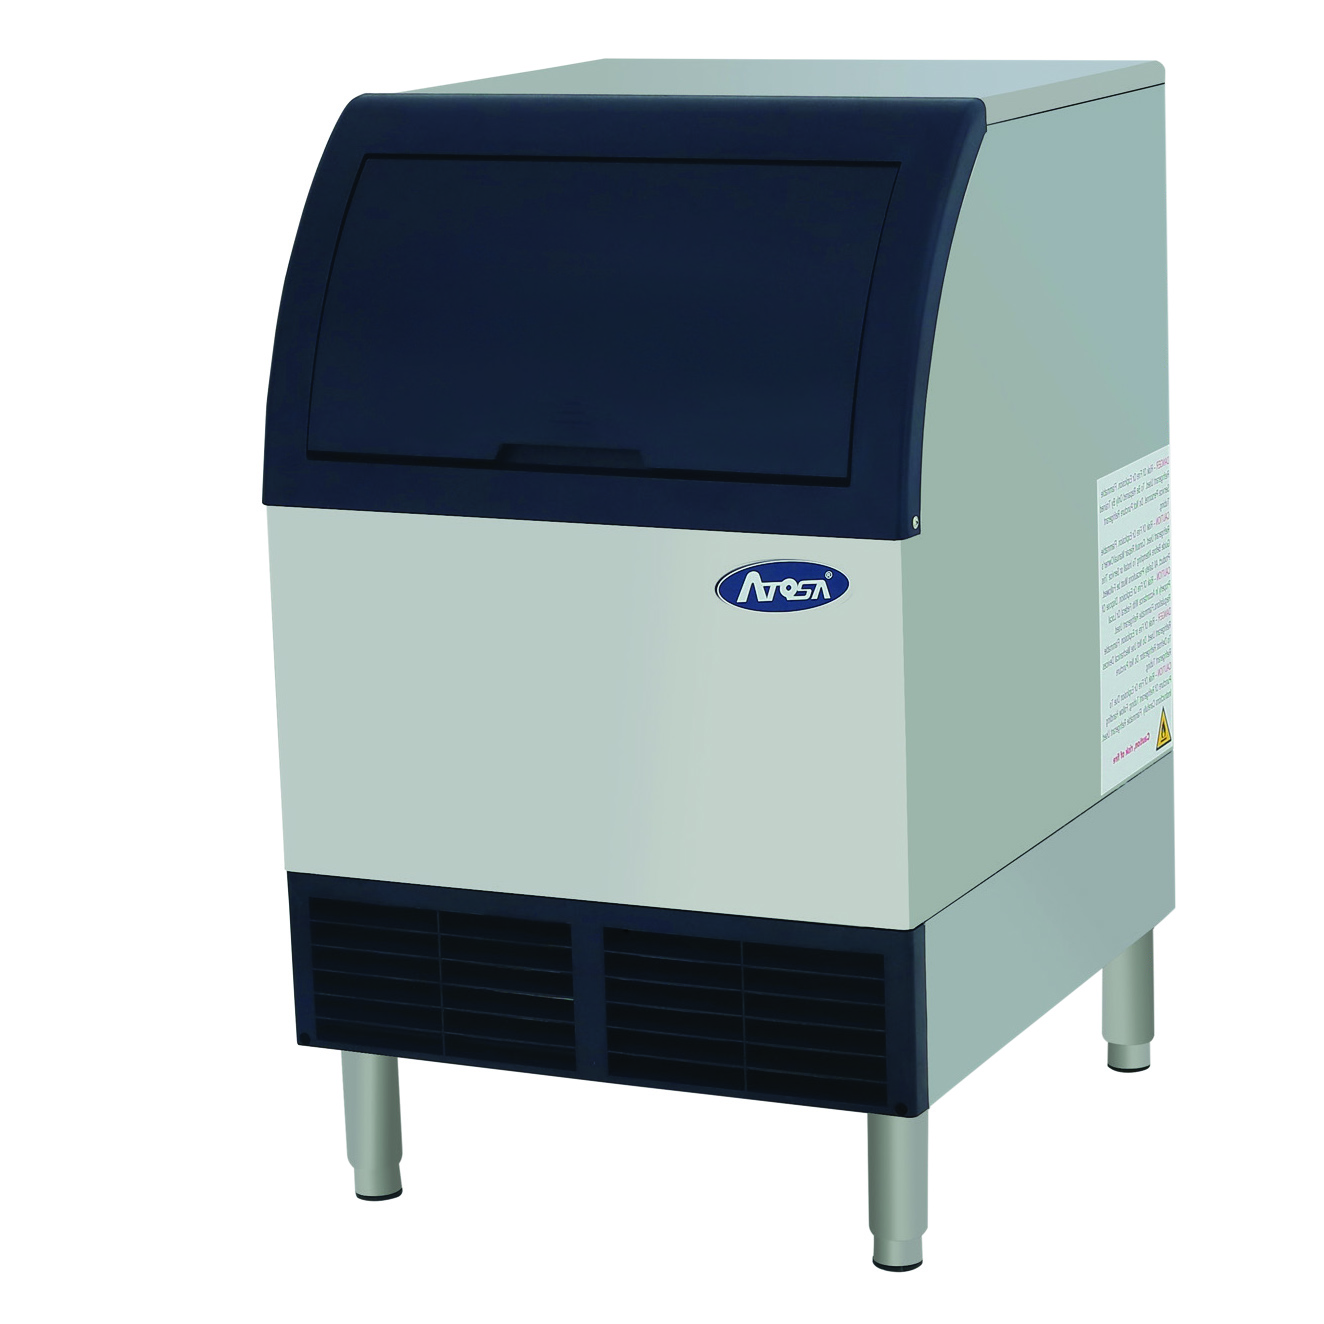 Atosa USA YR140-AP-161 ice maker with bin, cube-style